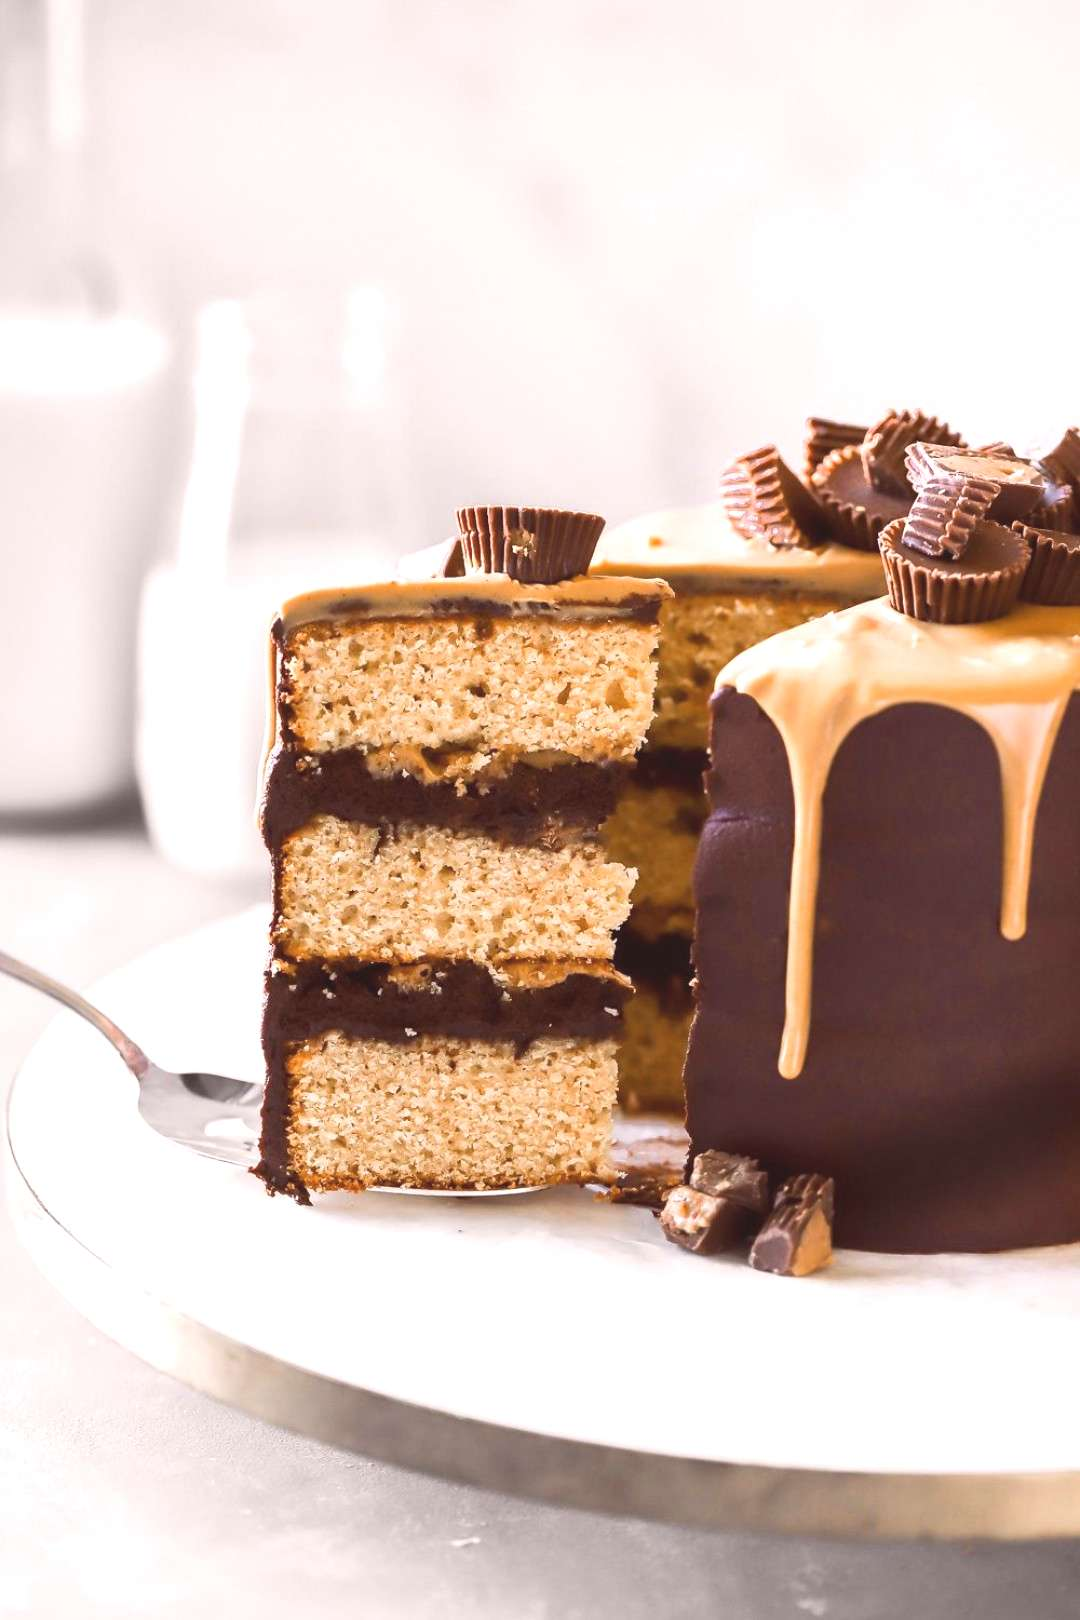 Reese's Peanut Butter Chocolate Cake Peanut butter cake layers topped with the BEST dark chocolat